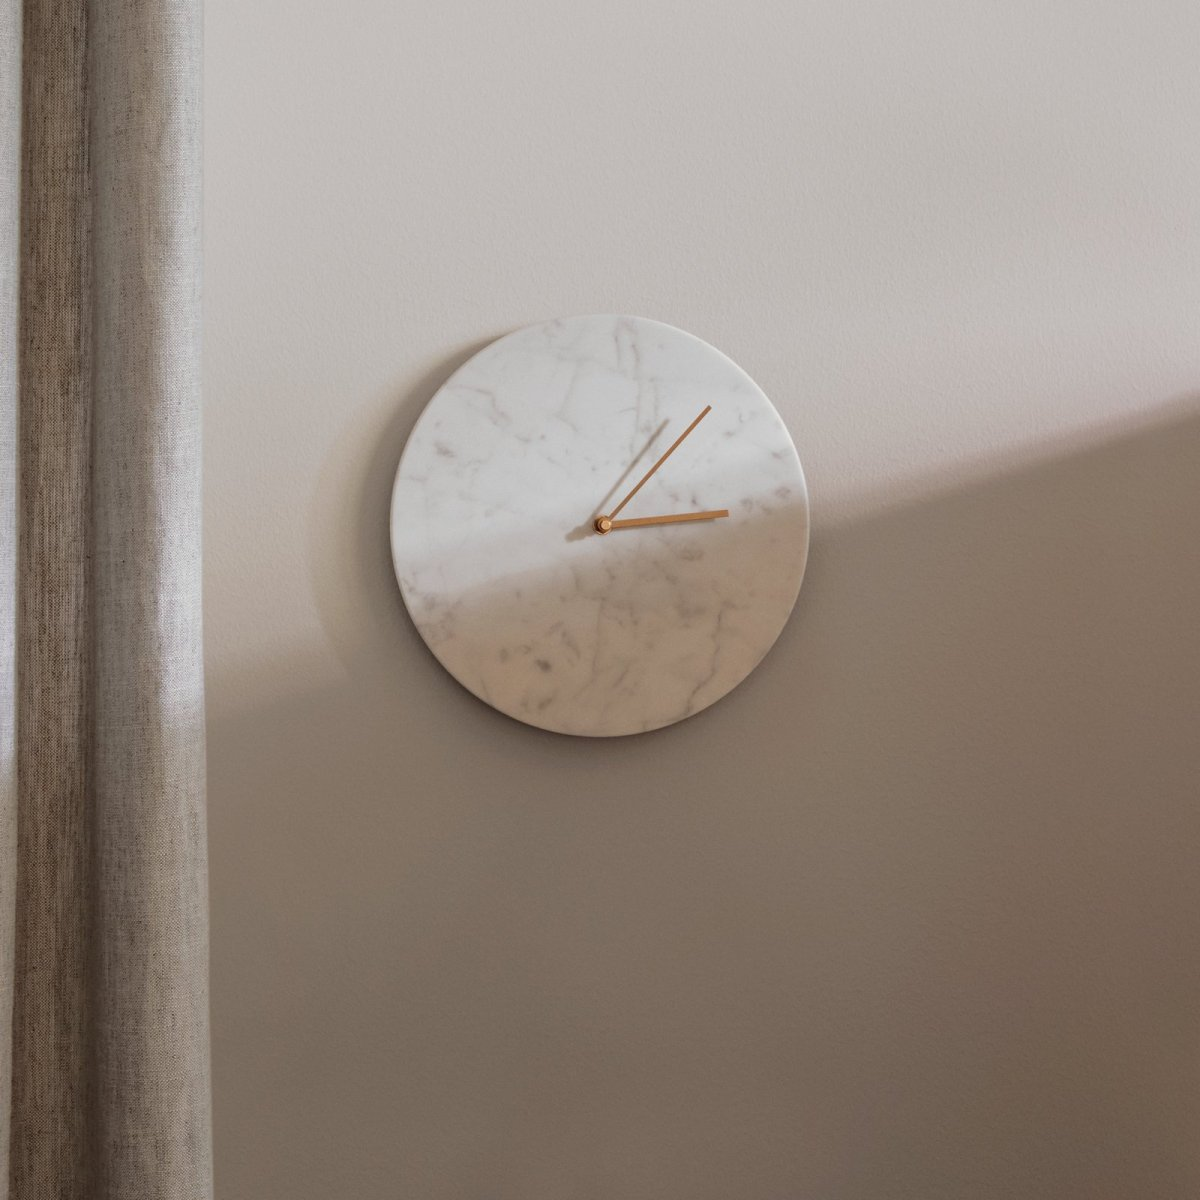 Marble Wall Clock, white.